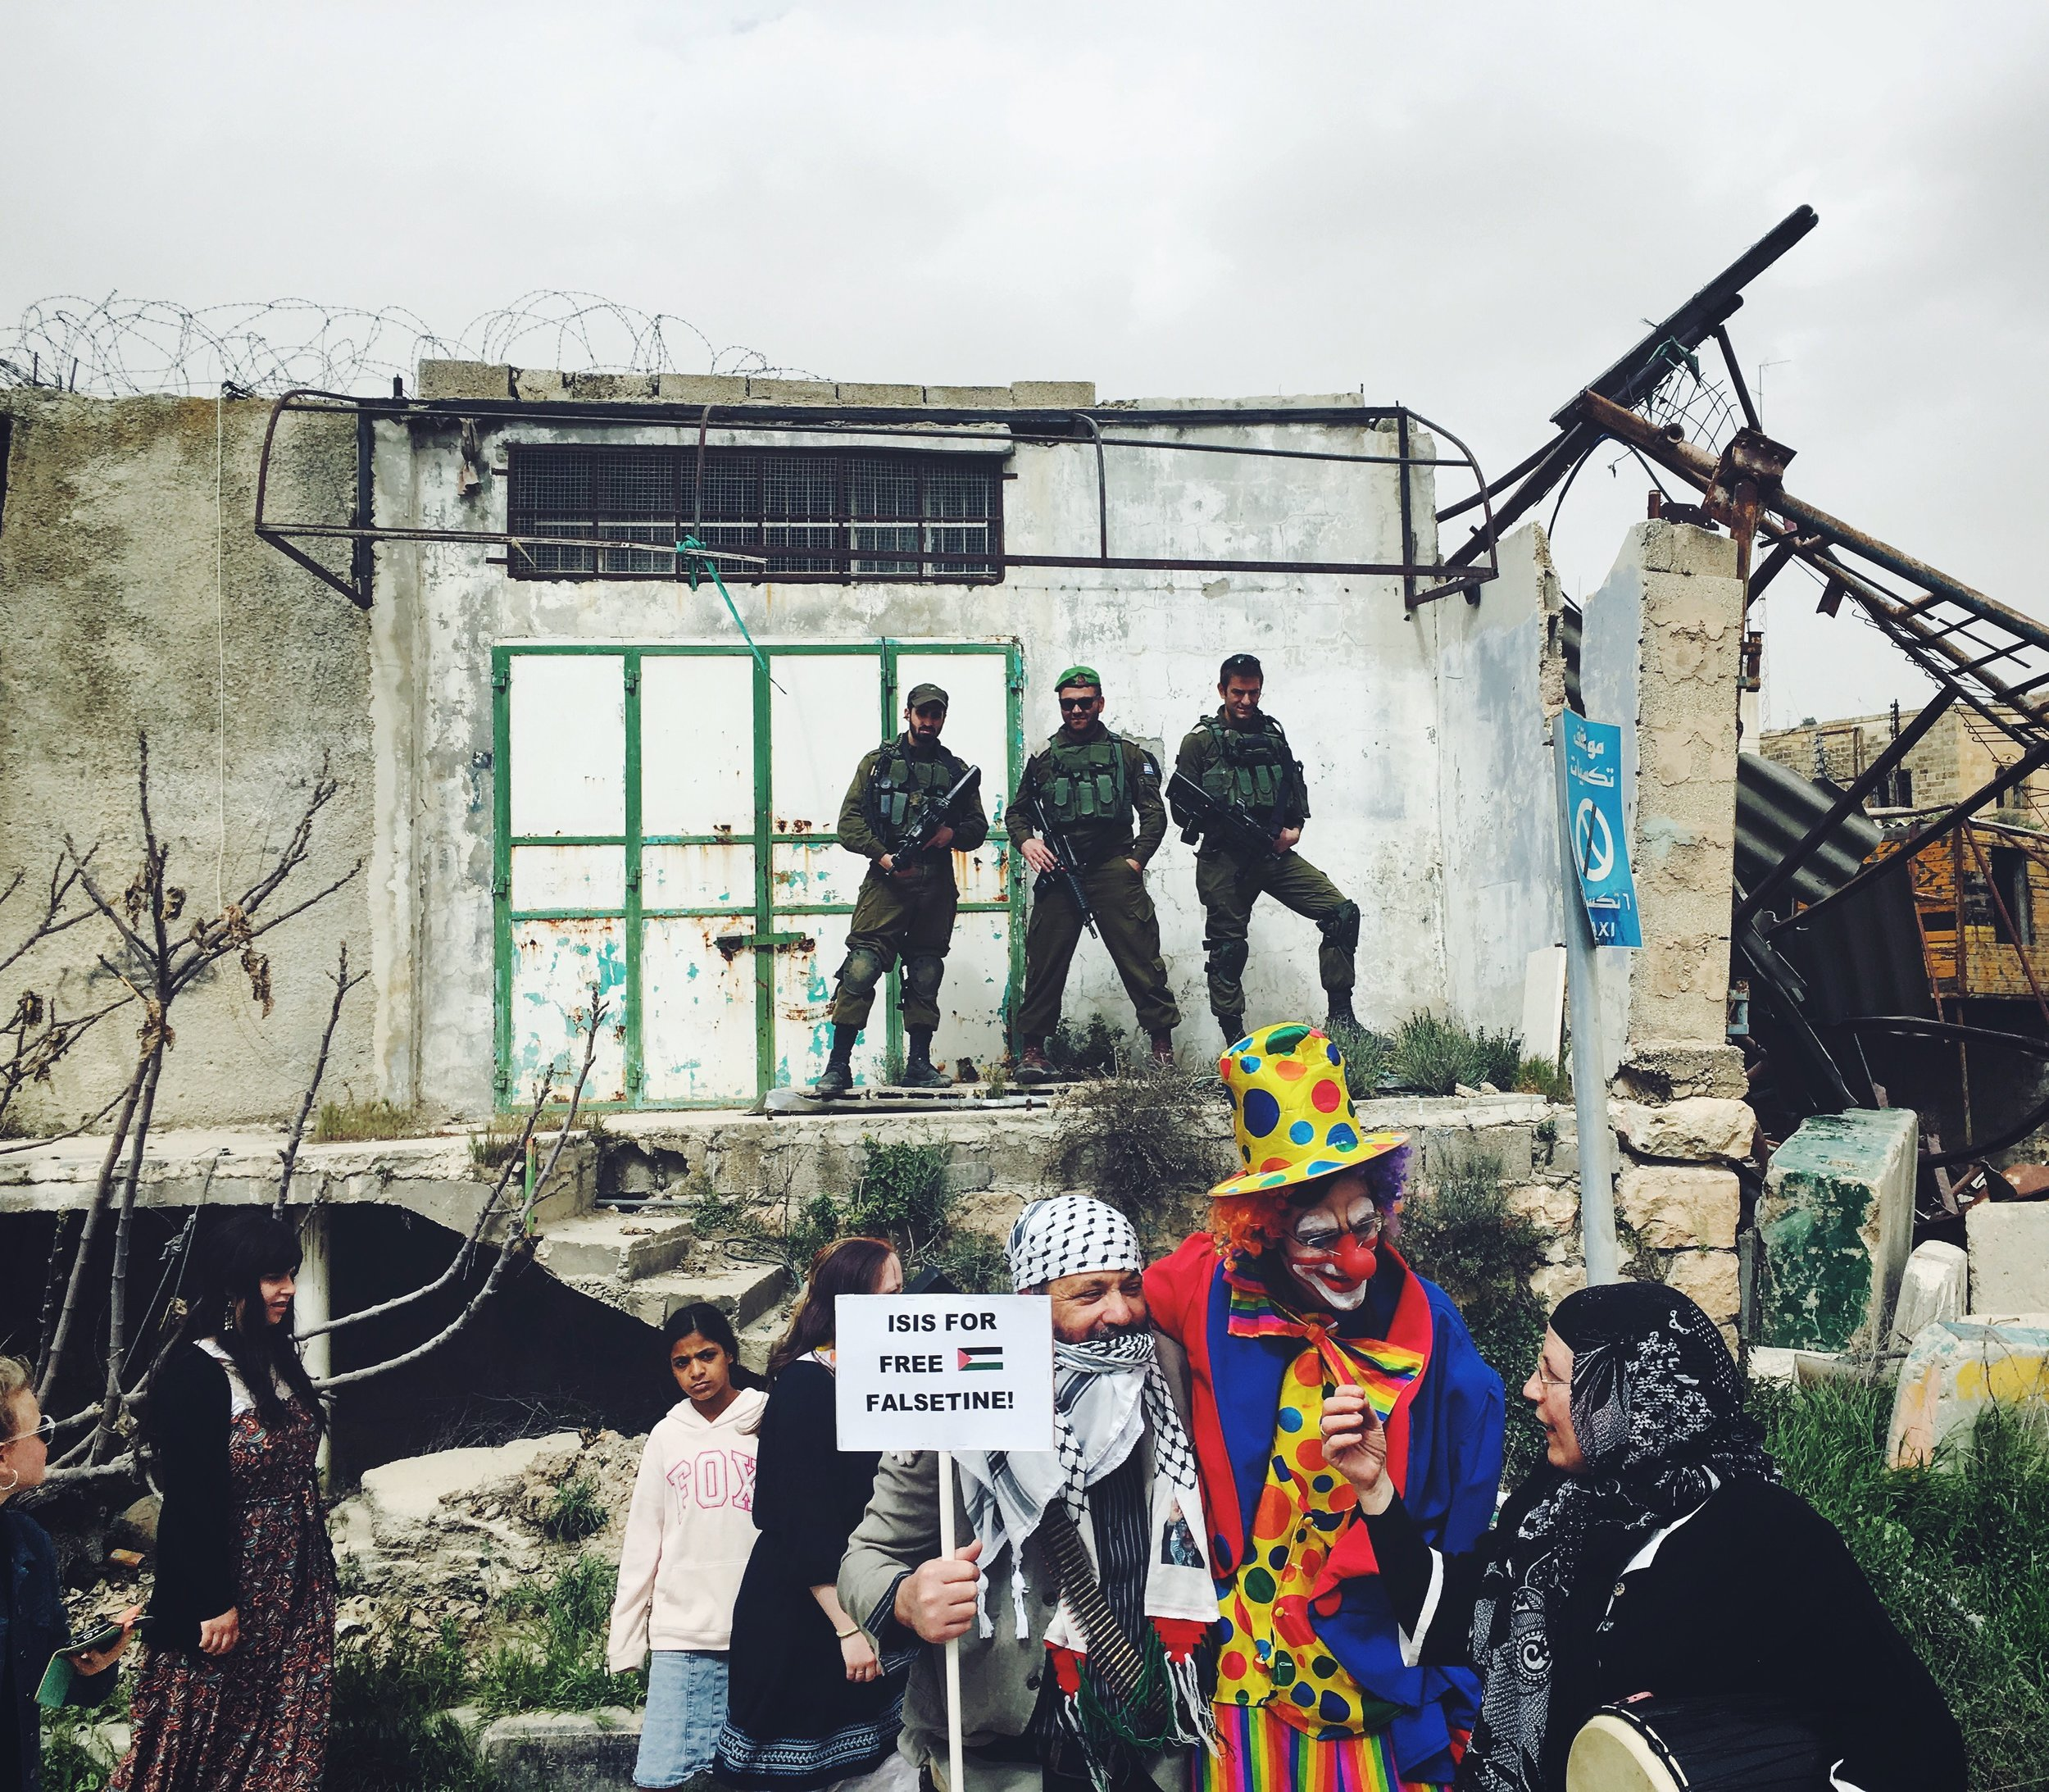 """A fringe group of settlers in the West Bank city of Hebrom celebrating Purim.Costumes from left to right: terrorist, clown and """"Palestinian woman."""""""